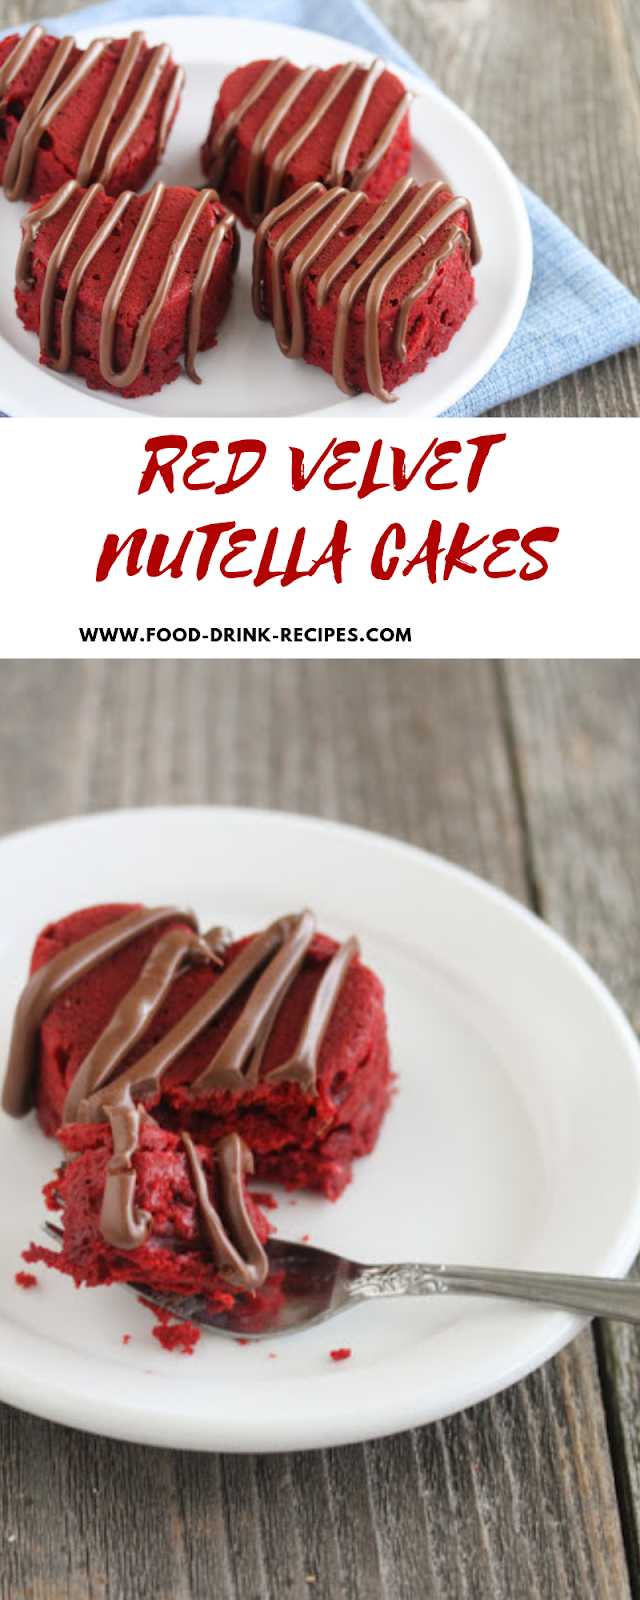 Red Velvet Nutella Cakes